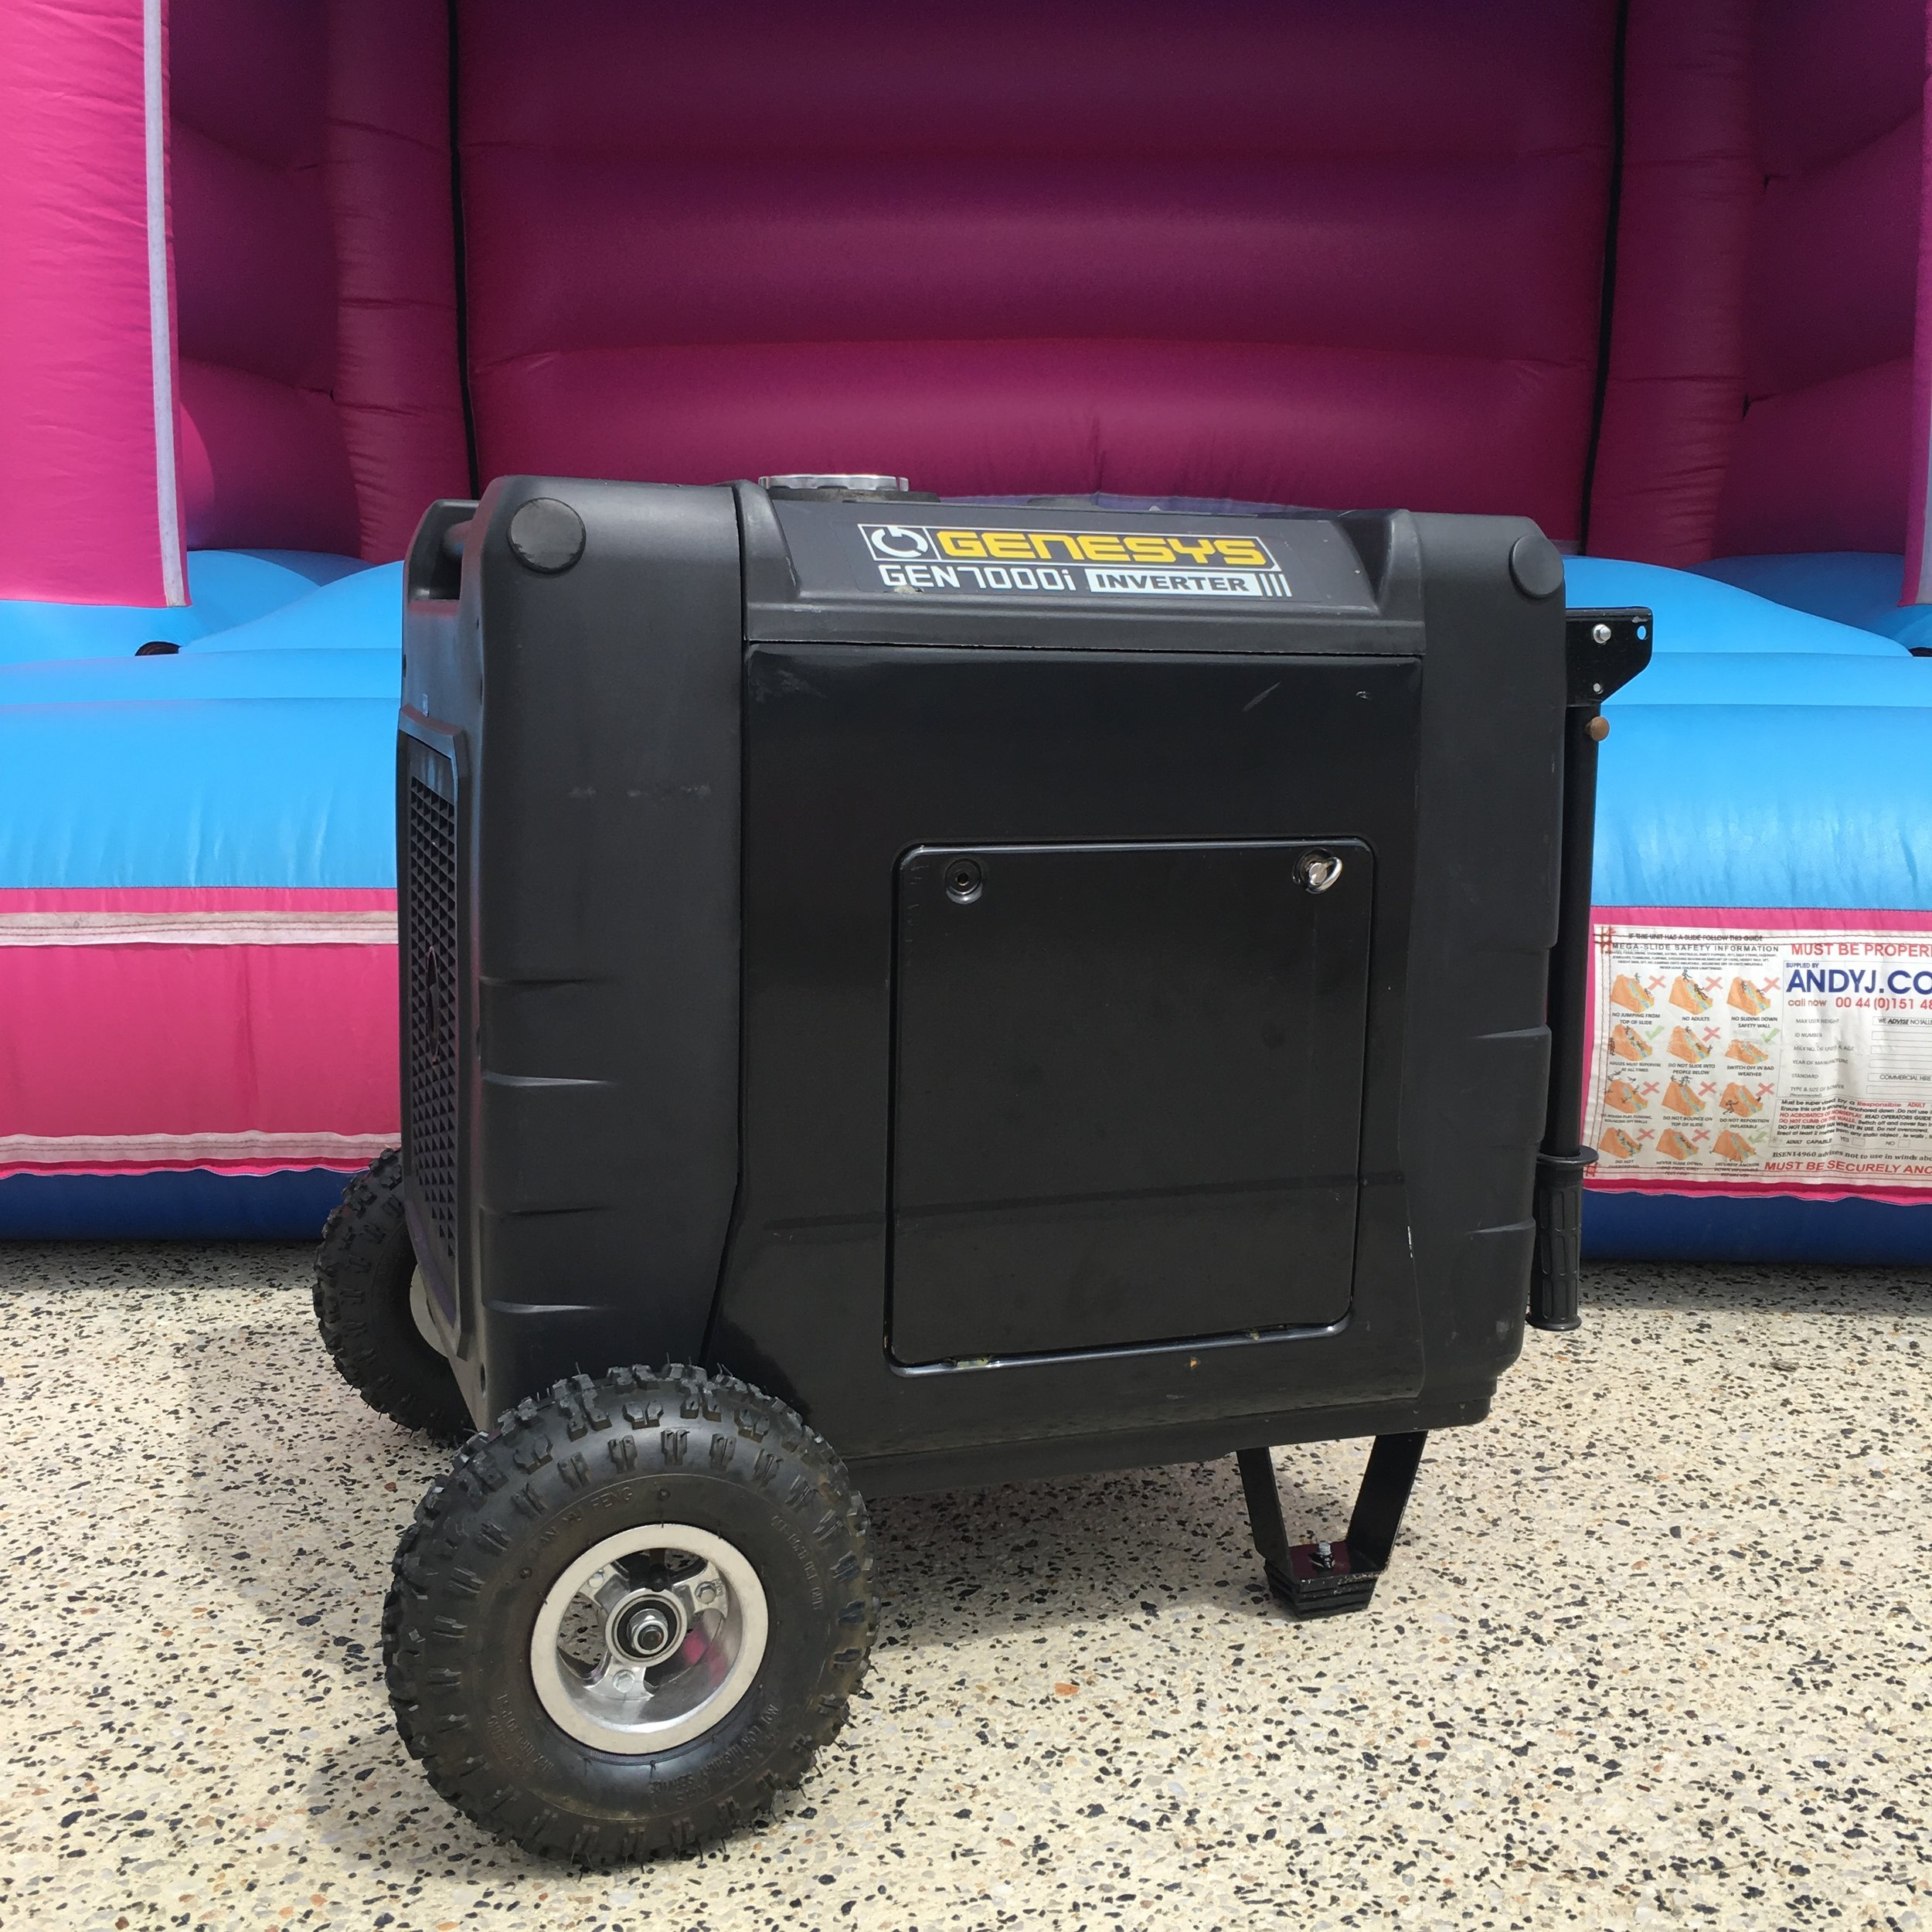 Generator Hire $40 - Generator Hire is required when we have no access to power. This is mainly used at events and parties that are set up in your local park. The generator comes with enough fuel for a 4 hour hire. Extra fuel can be arranged if your event or party is going on for a longer period